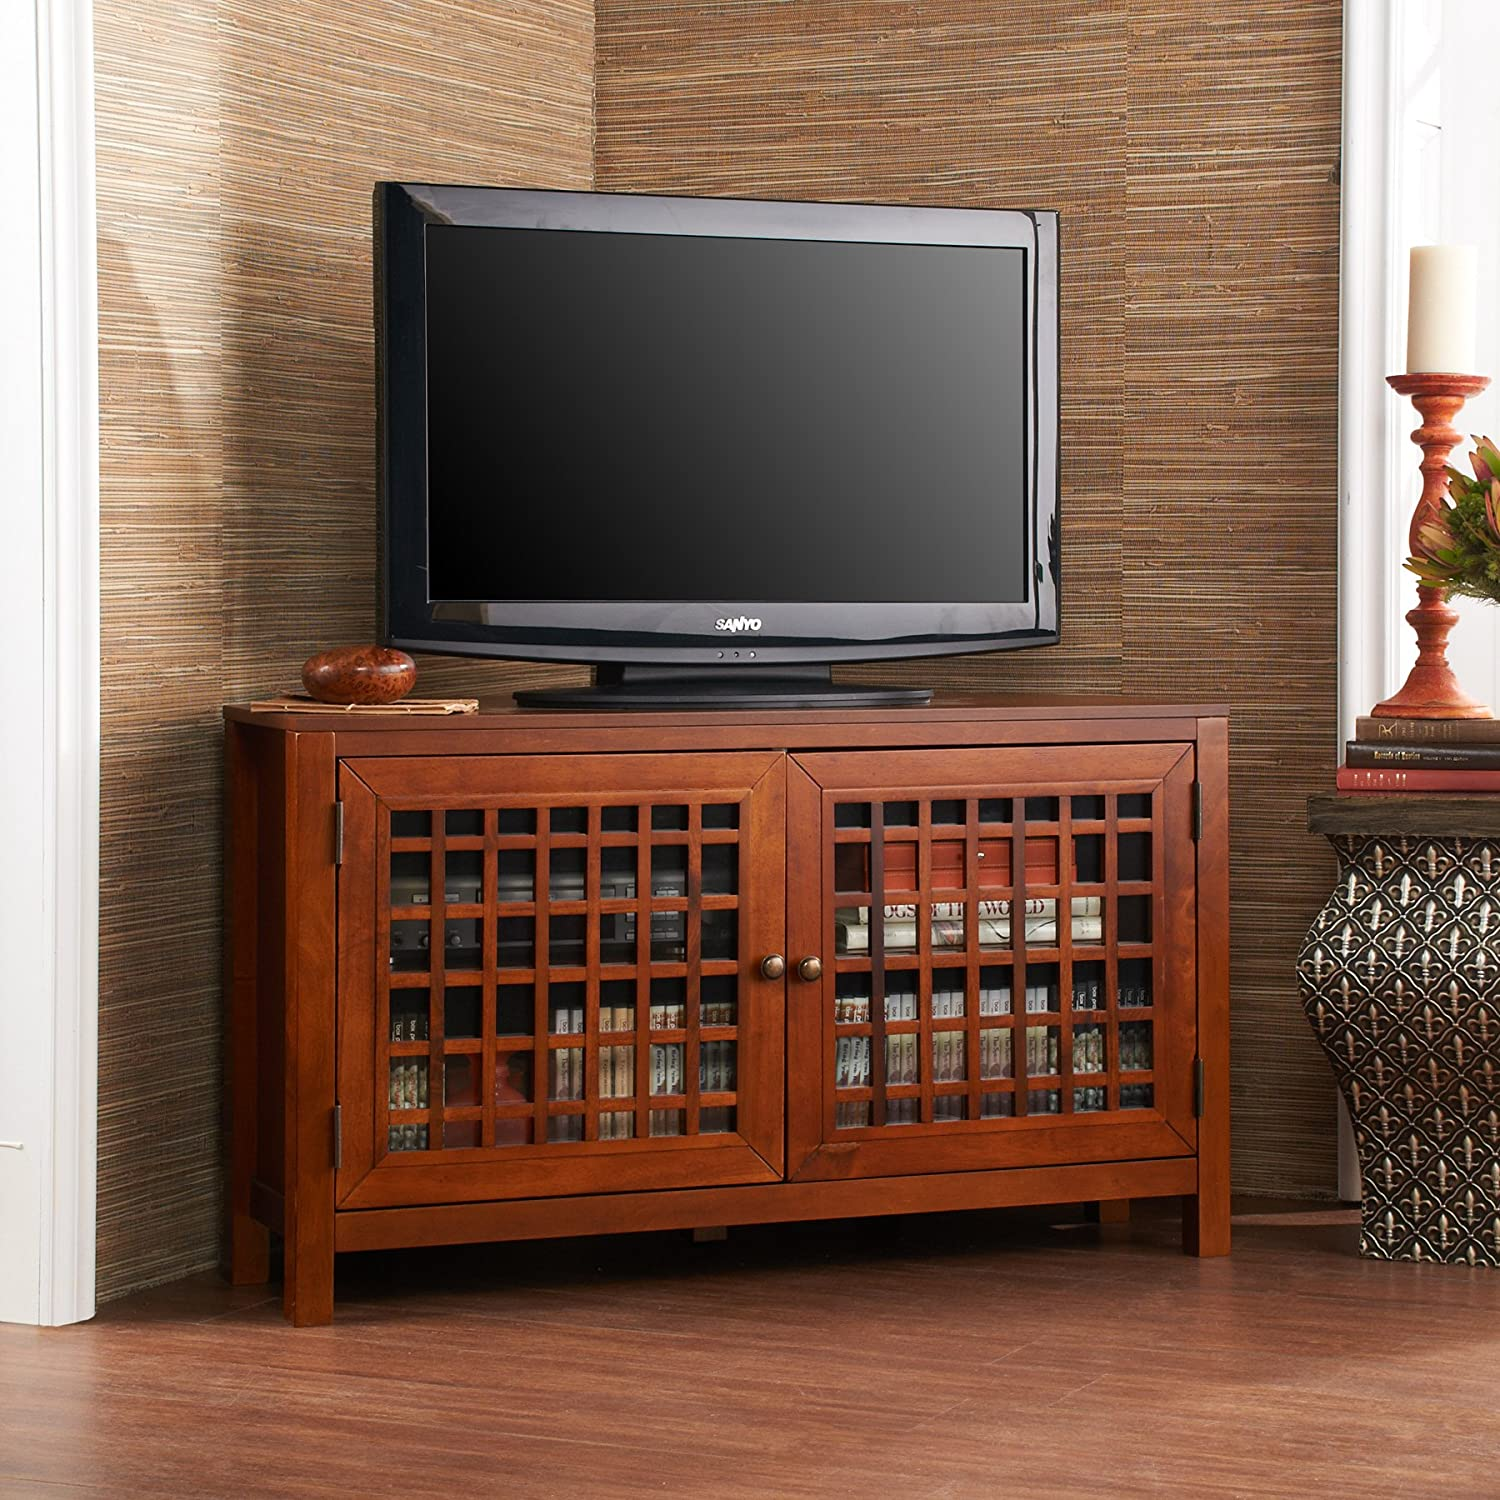 amazoncom narita corner media stand  walnut kitchen  dining -